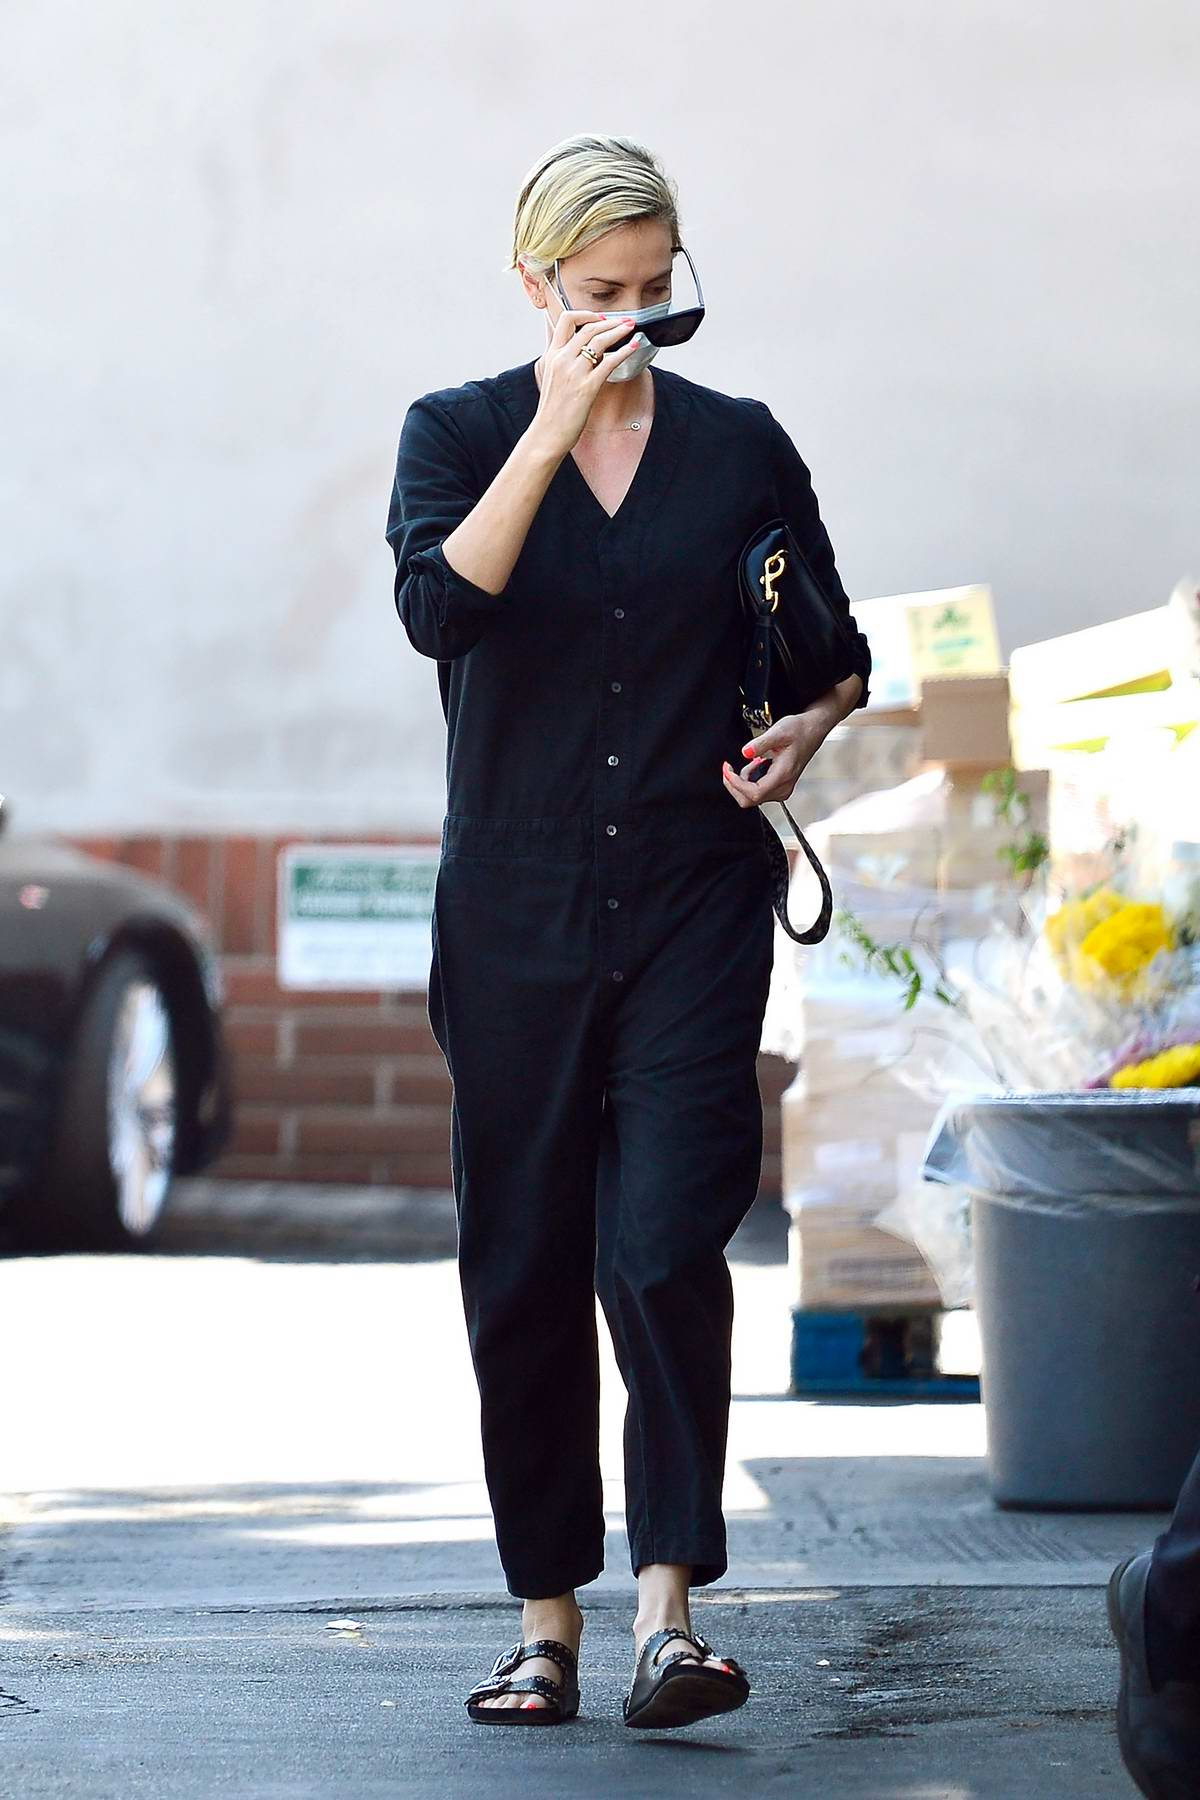 Charlize Theron stops by the market to pick up some groceries and flowers in Los Angeles